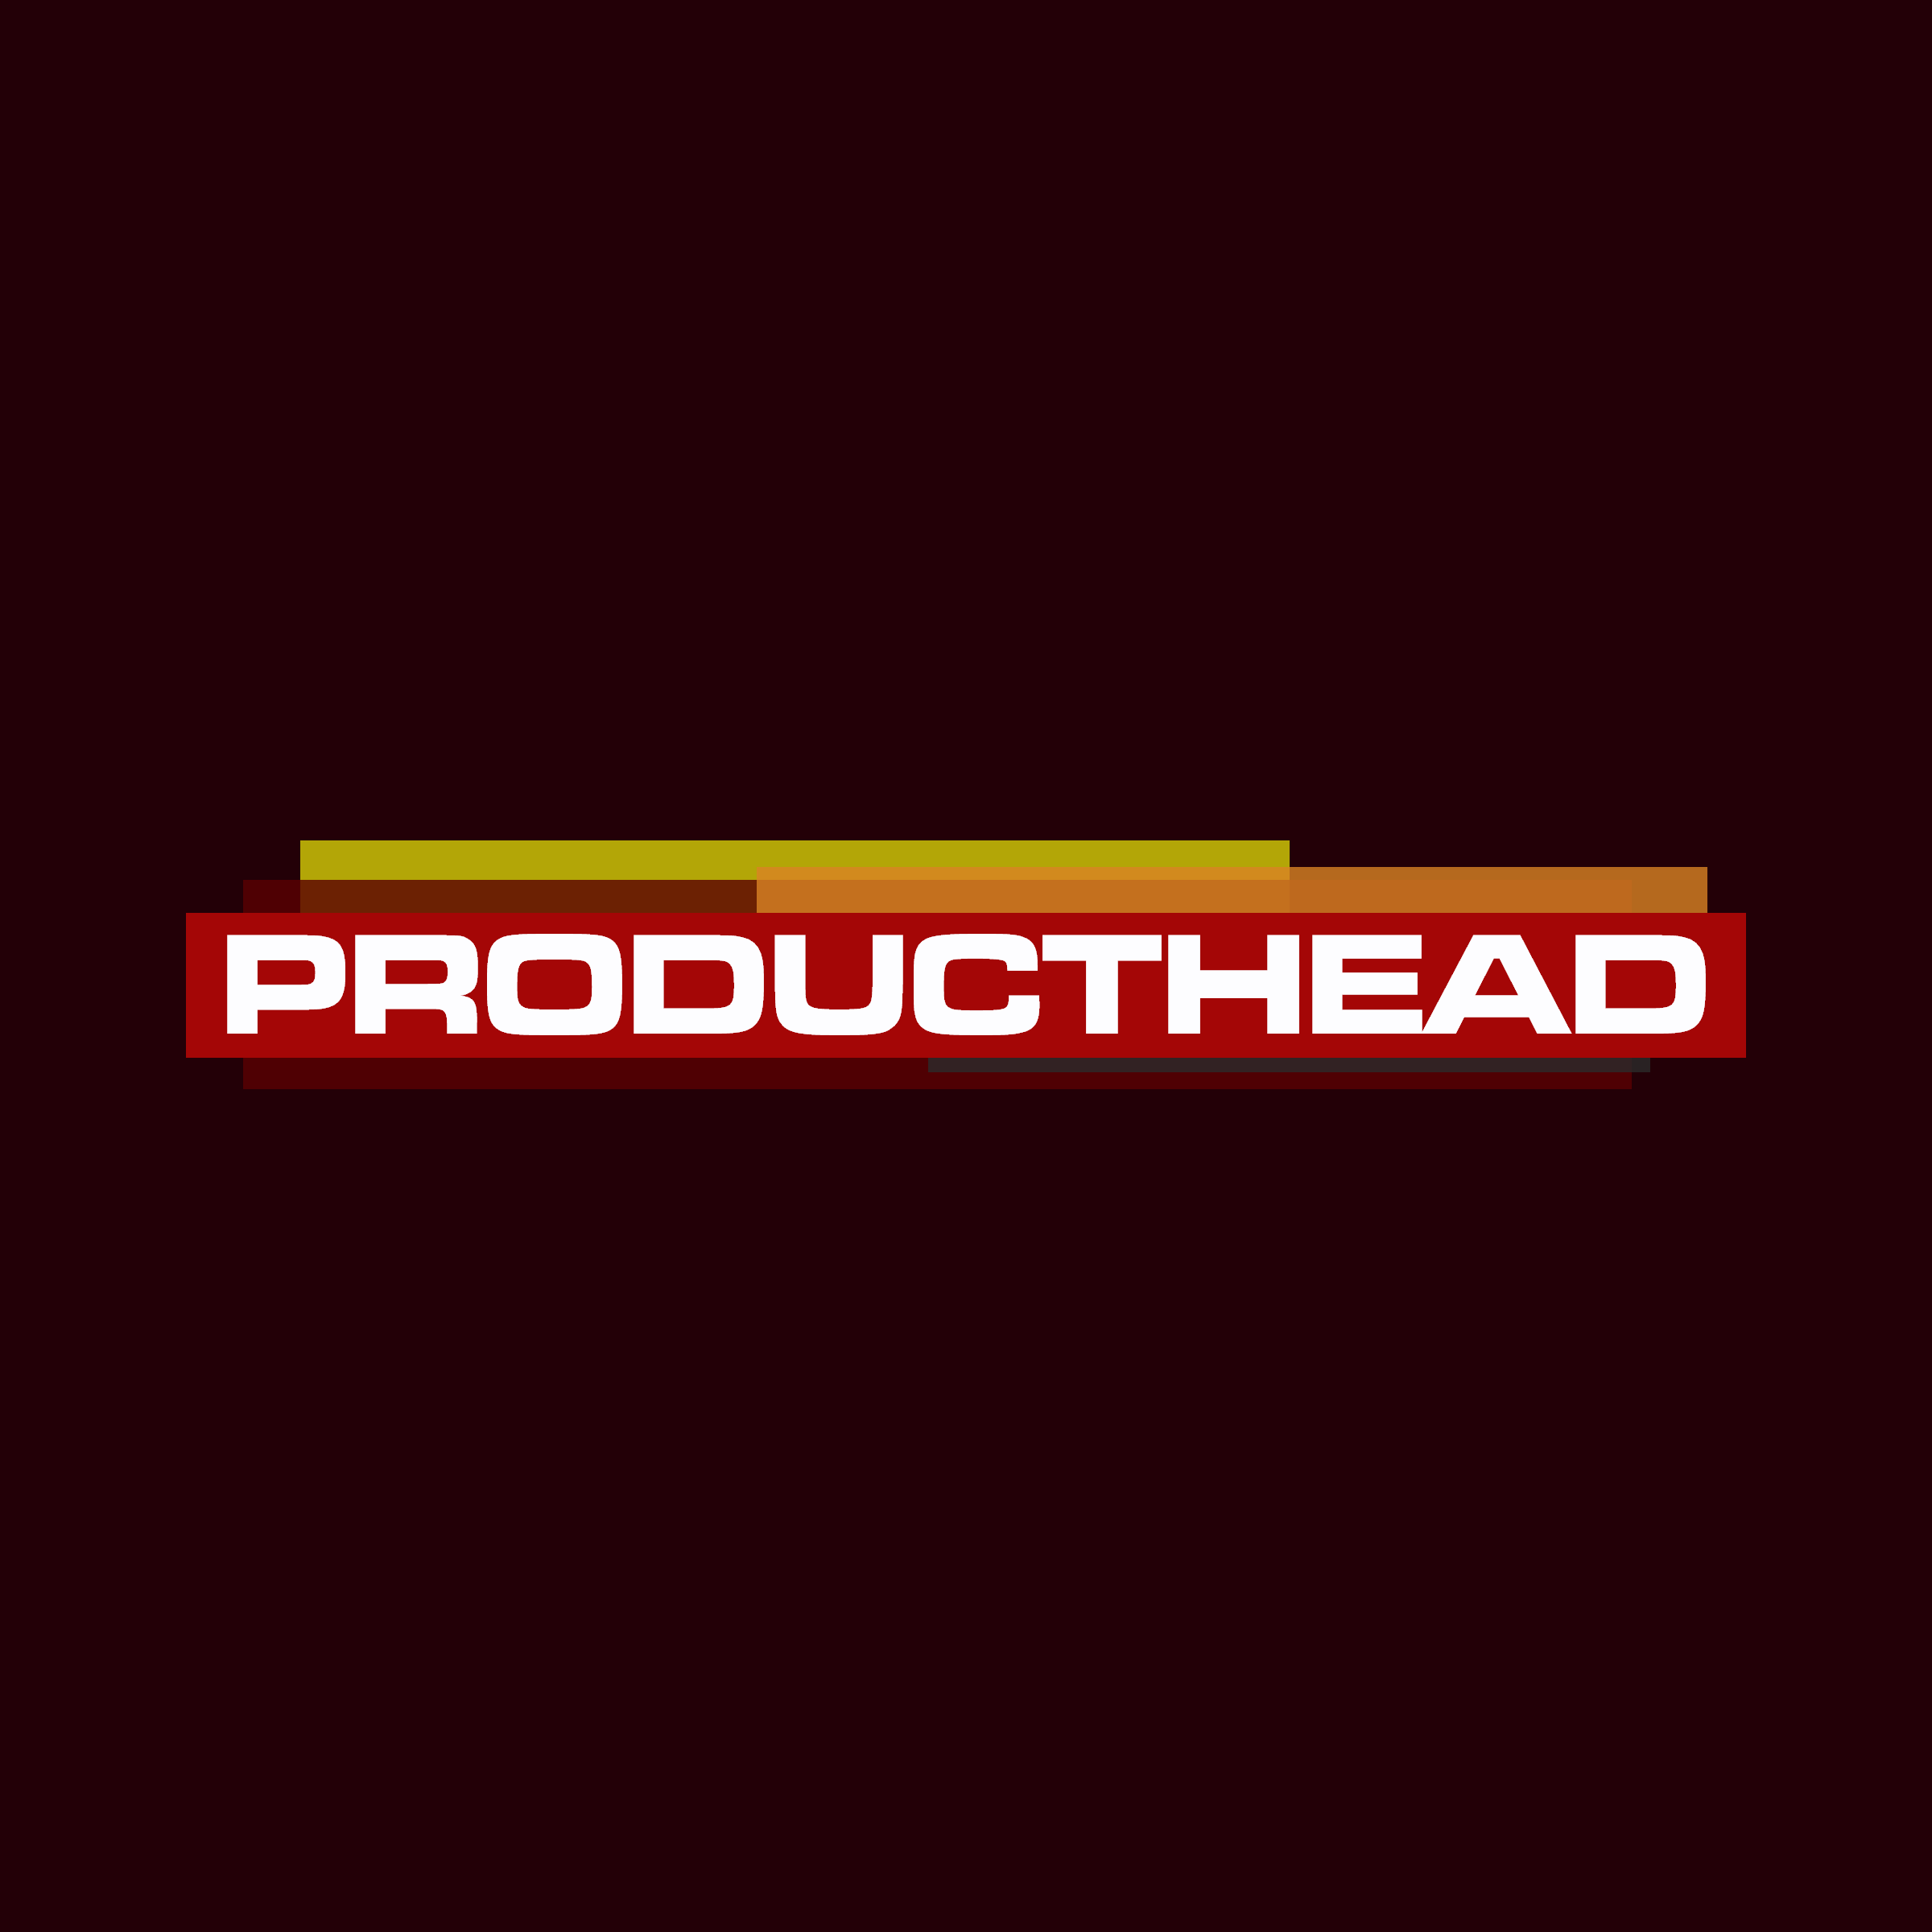 PRODUCTHEAD: Living your brand values